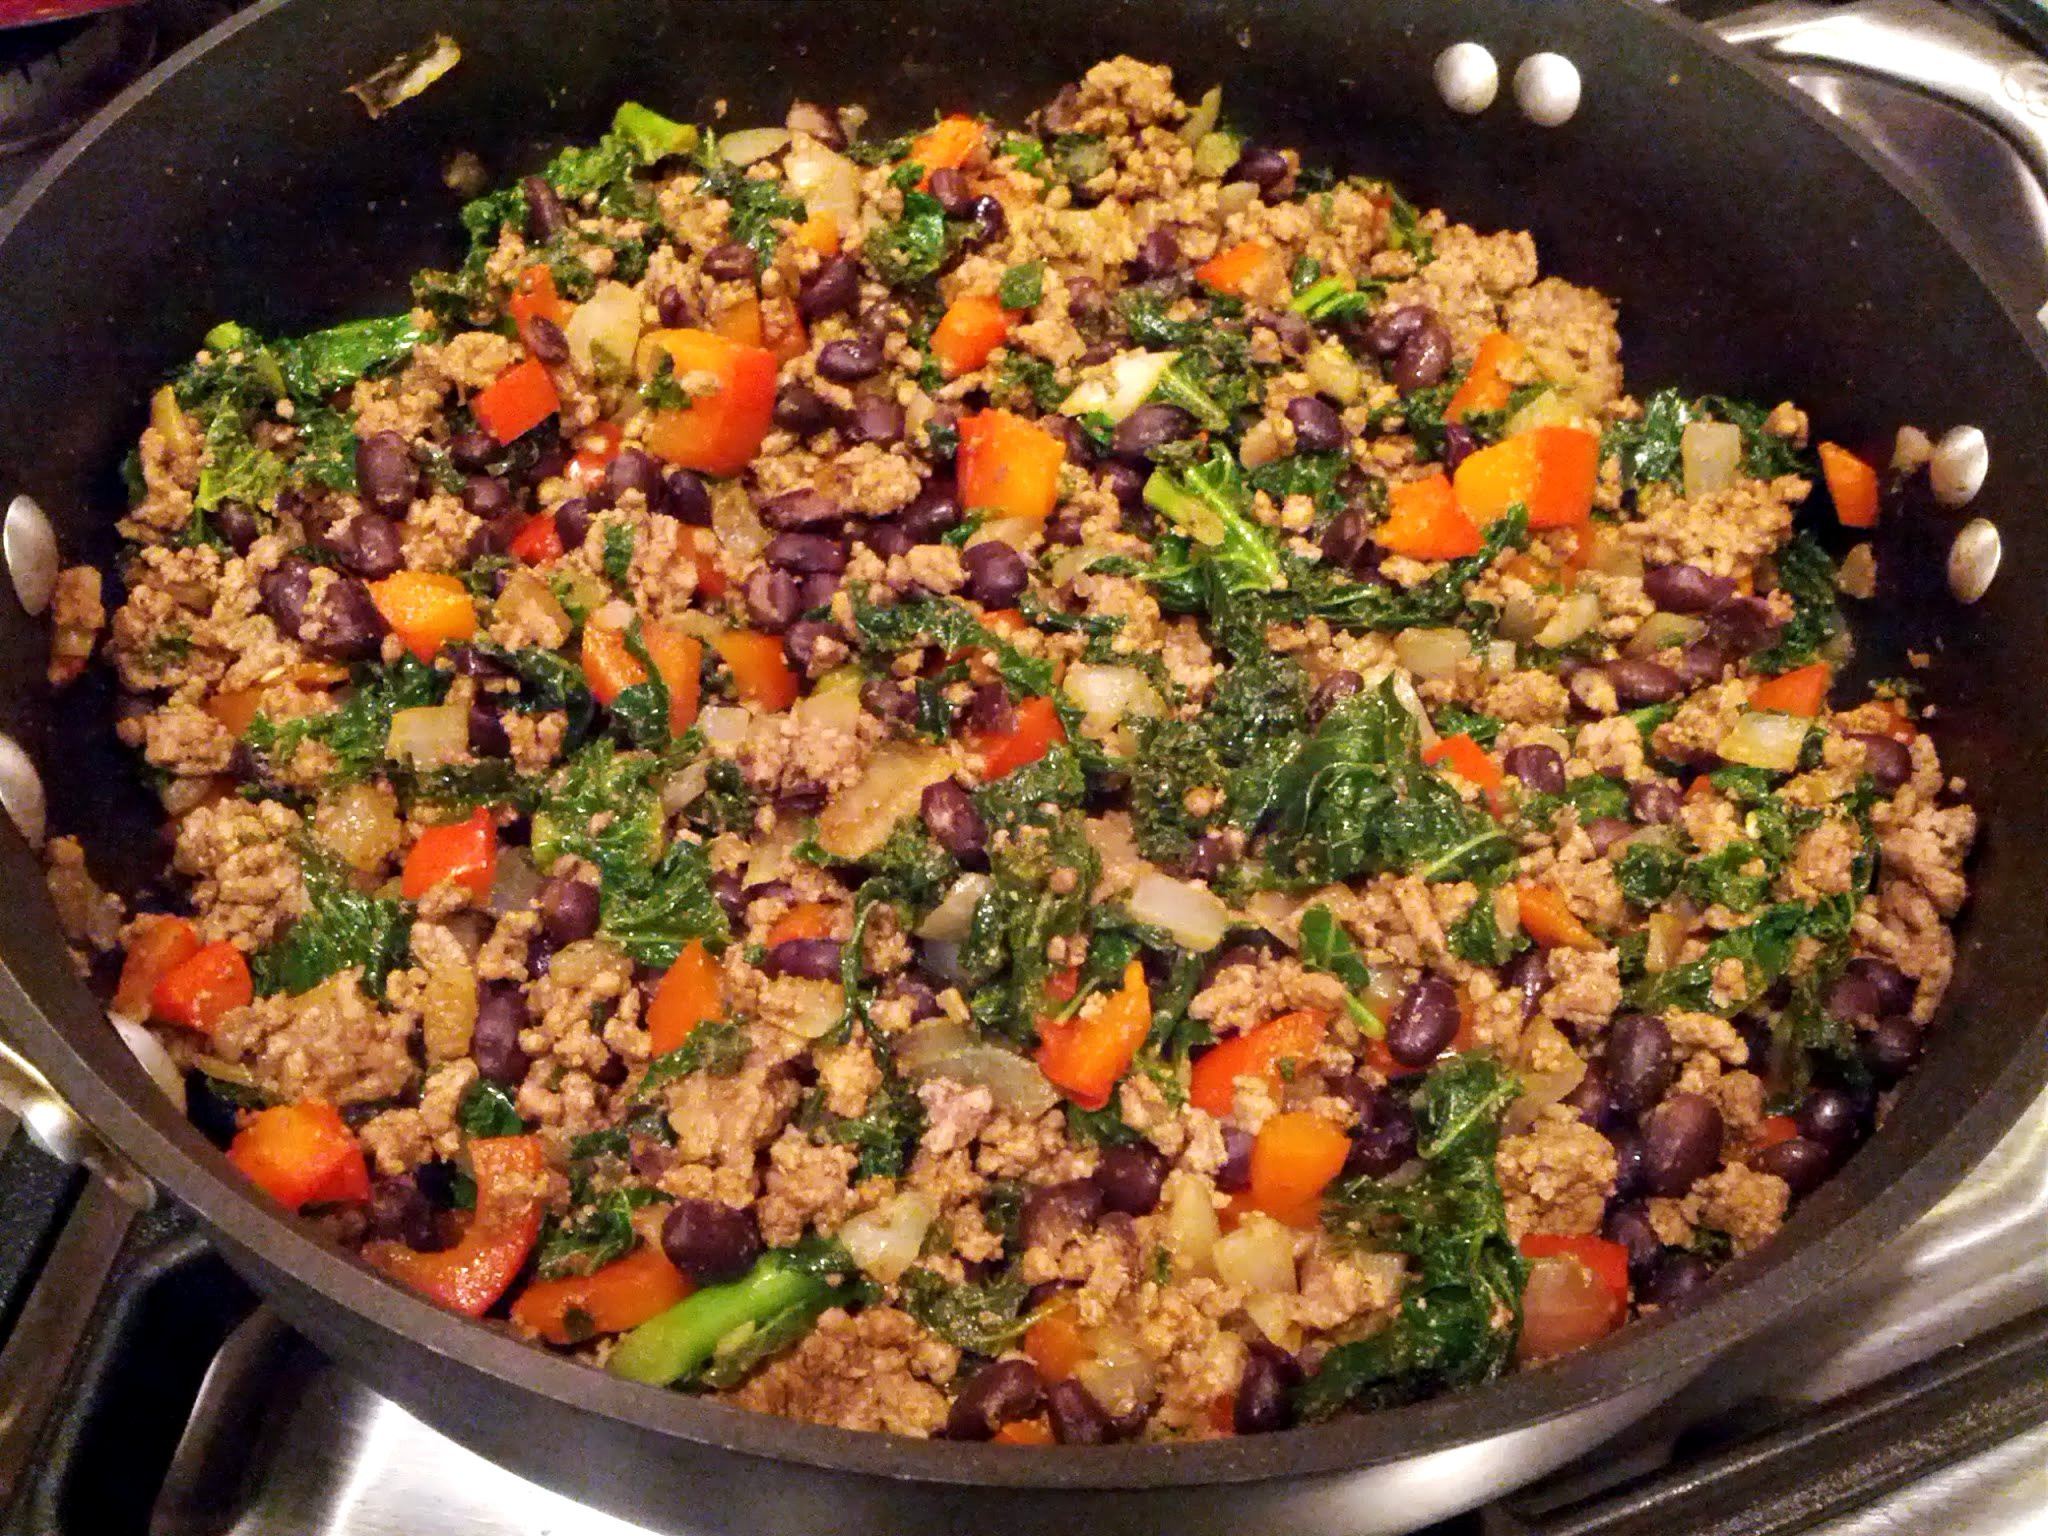 Recipes With Ground Turkey  Kale and Ground Beef Turkey Taco Filling